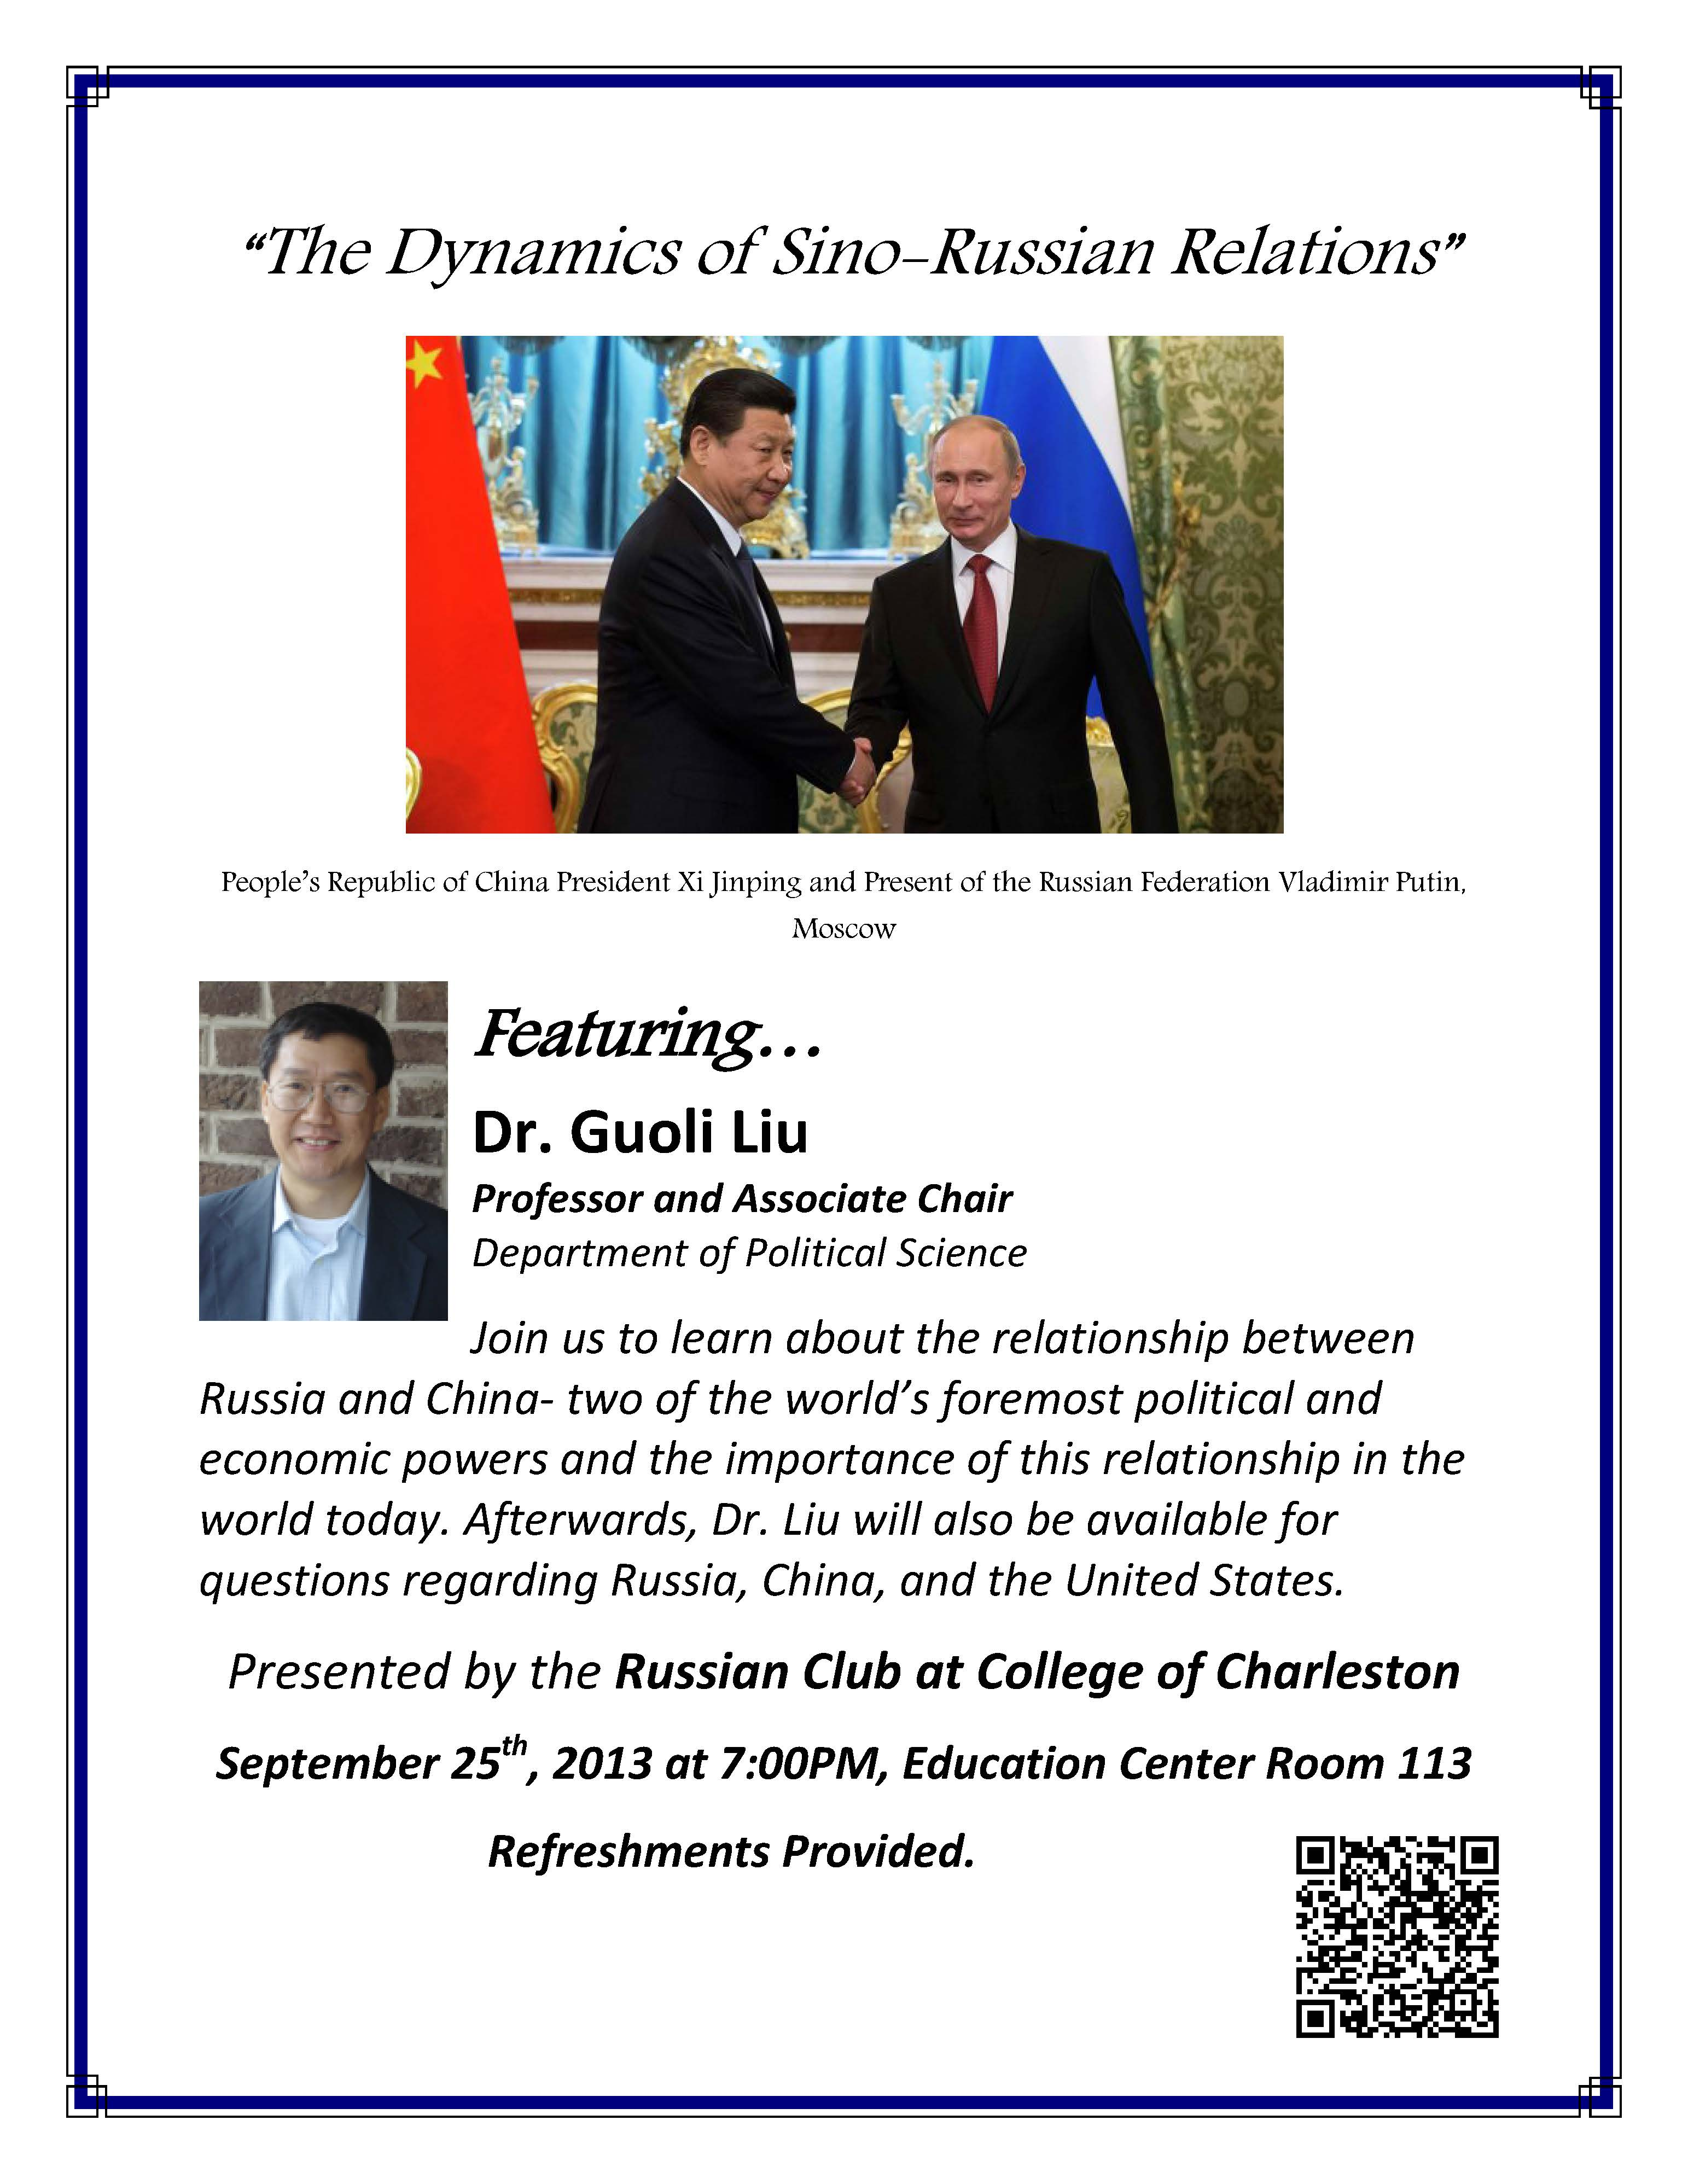 The Dynamics of Sino-Russian Relations